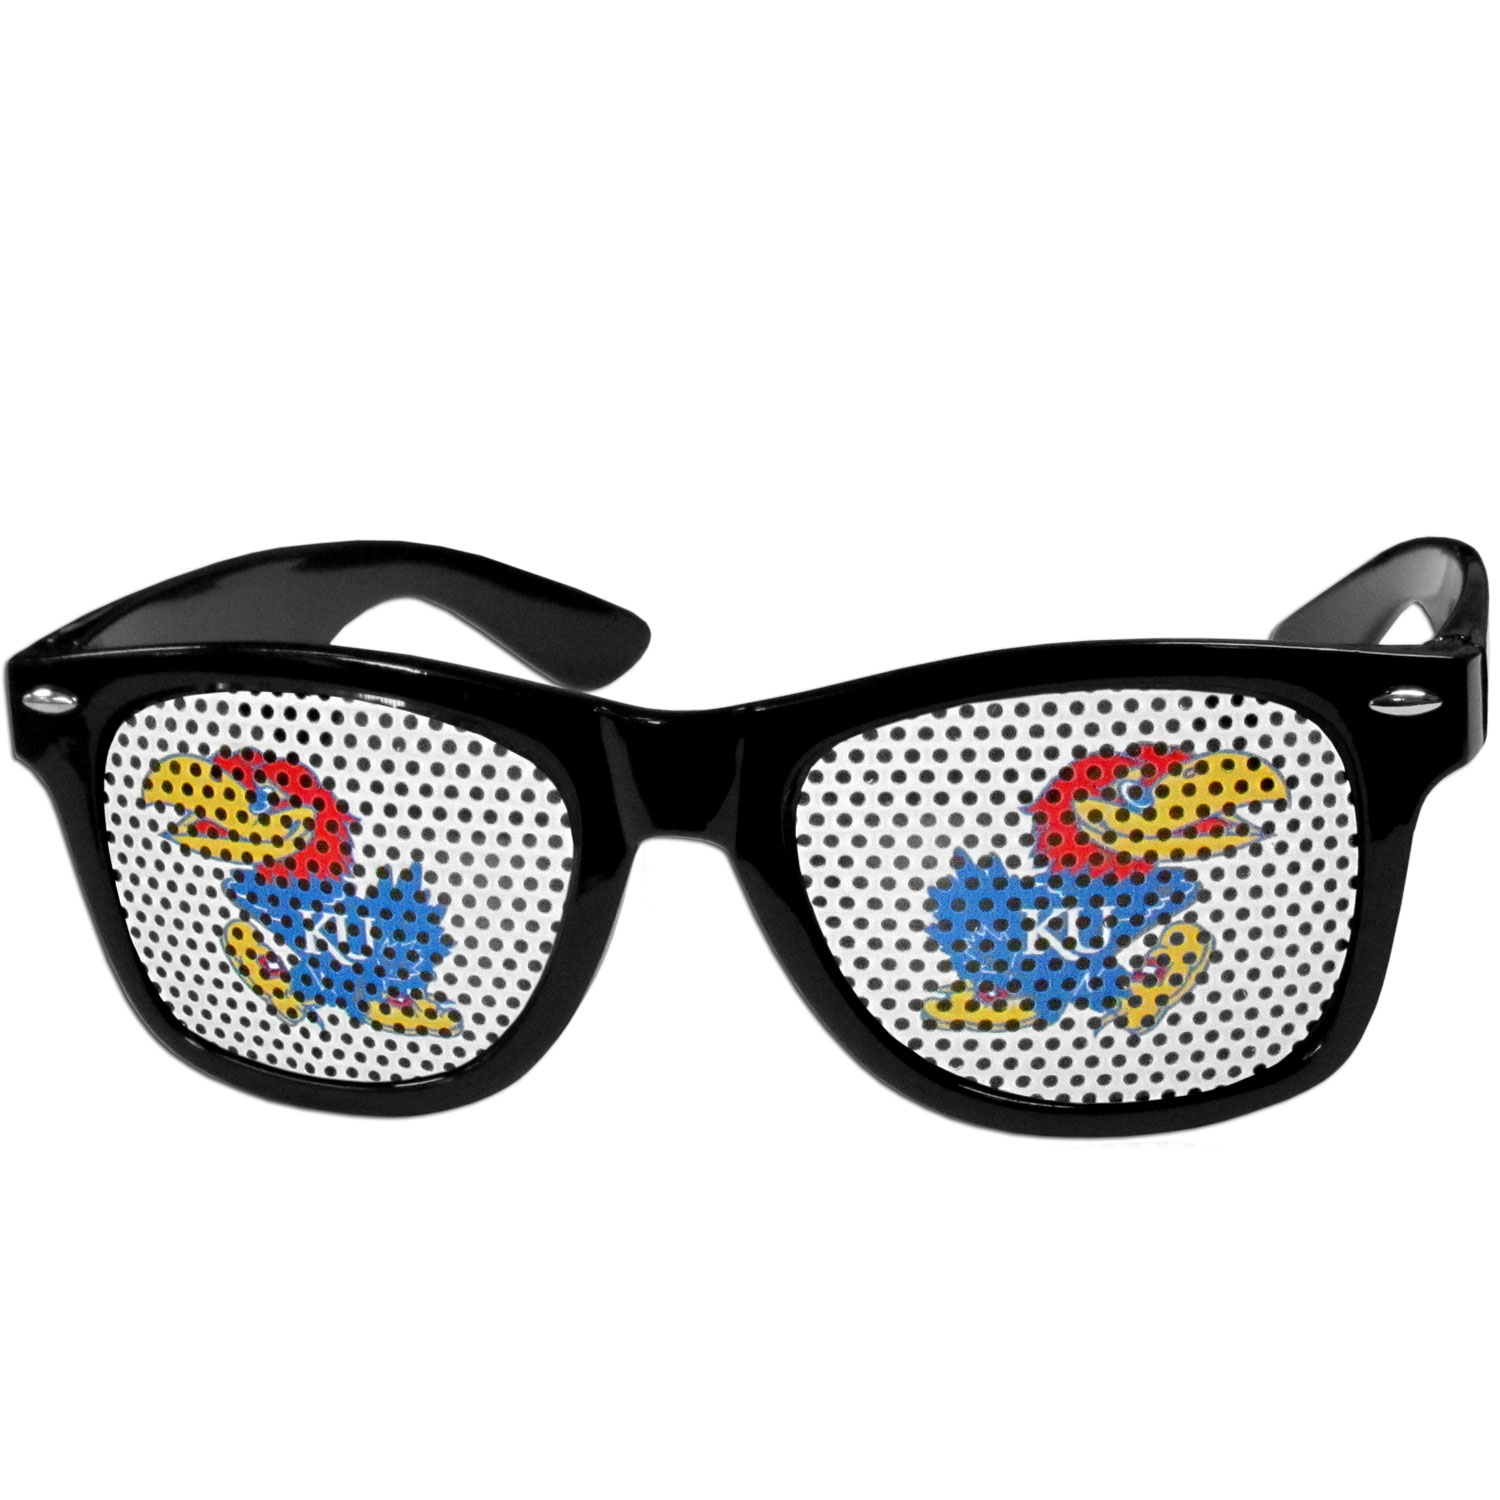 Kansas Jayhawks Game Day Shades - Our officially licensed game day shades are the perfect accessory for the devoted Kansas Jayhawks fan! The sunglasses have durable polycarbonate frames with flex hinges for comfort and damage resistance. The lenses feature brightly colored team clings that are perforated for visibility.